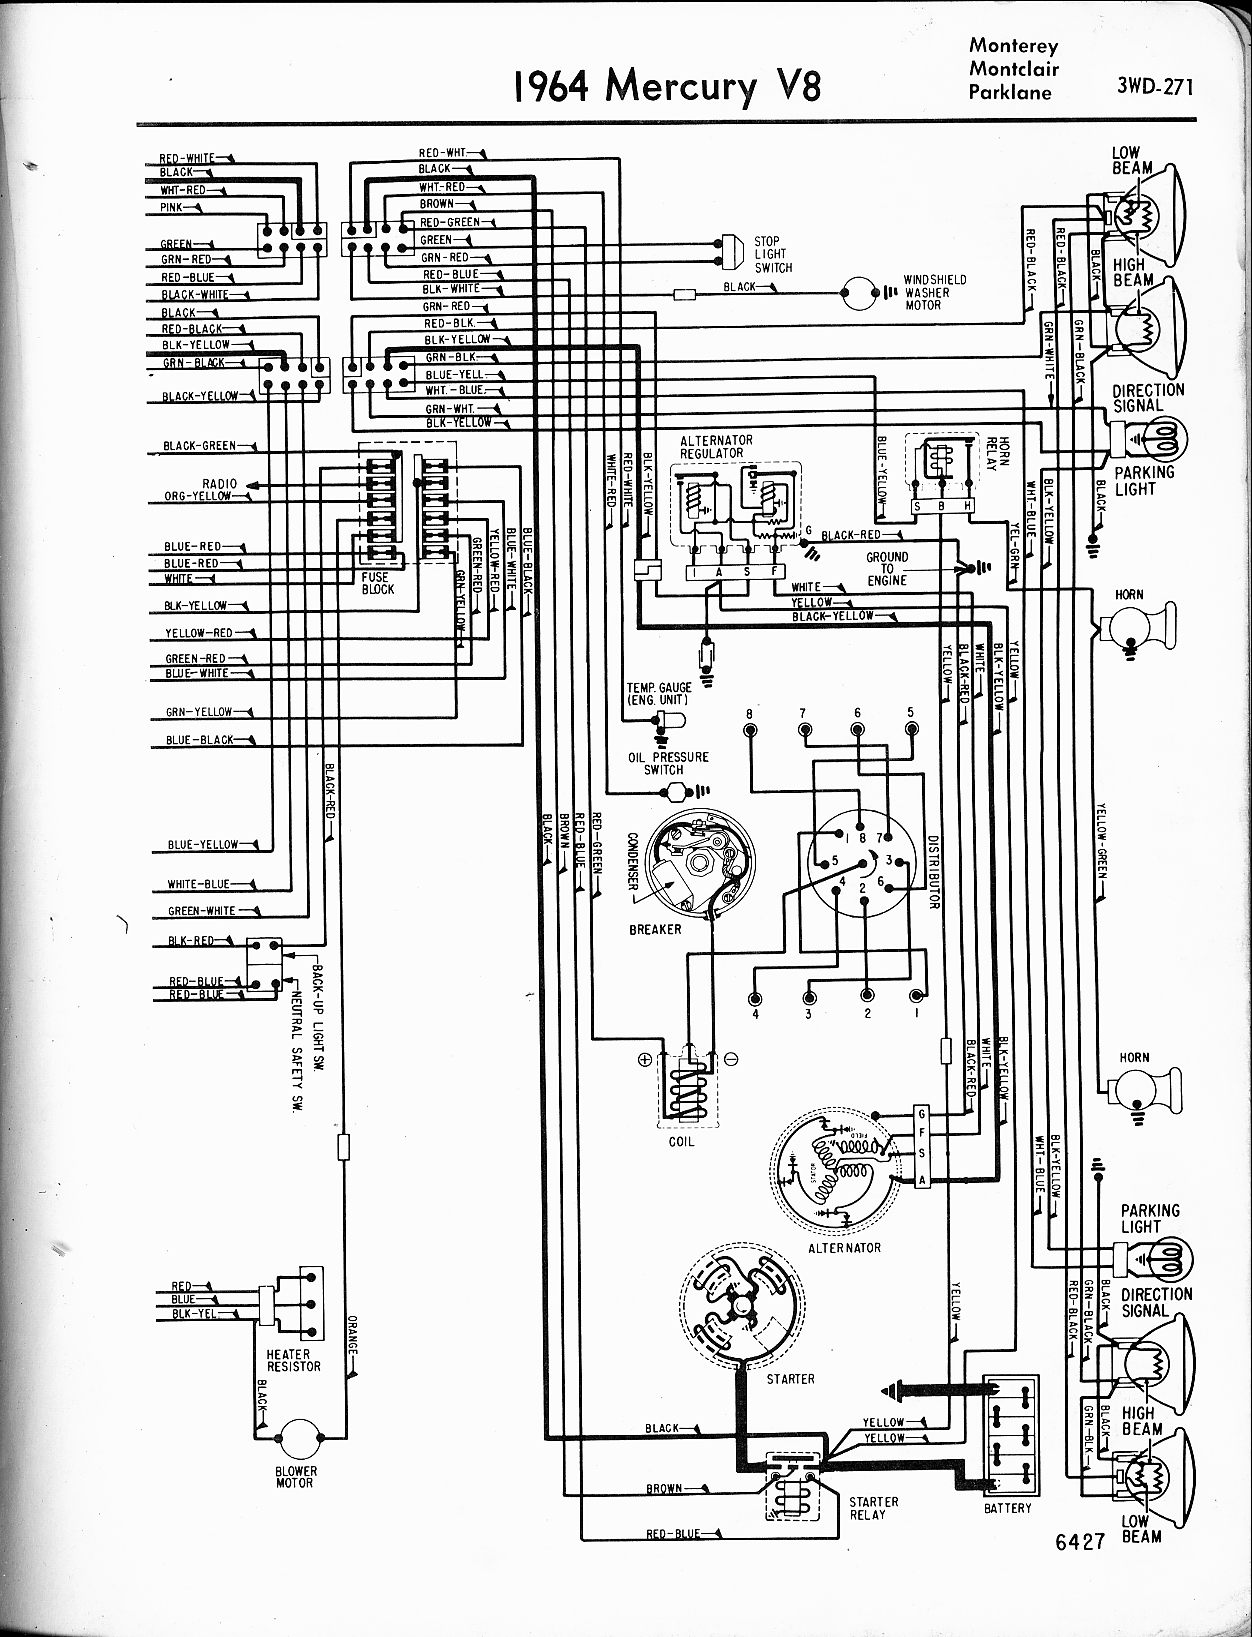 Mercury Wiring Diagrams The Old Car Manual Project Realfixesrealfast Wiring Diagrams  Mercury Wiring Diagrams